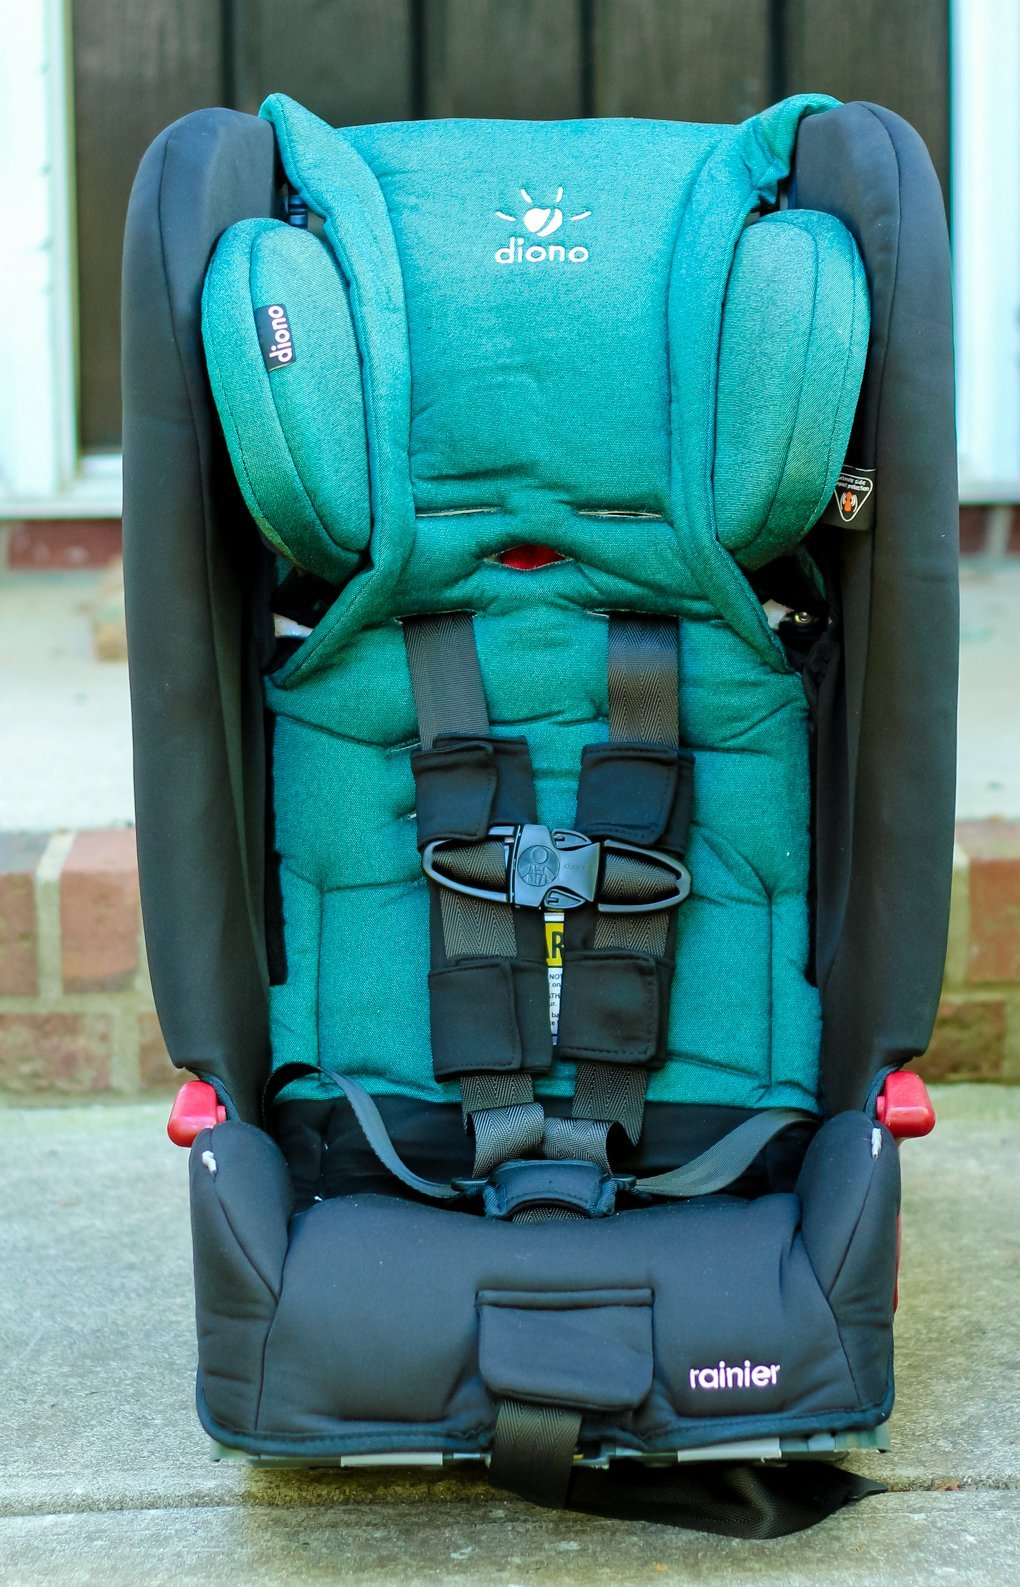 Grandparent Car Seat Myths Debunked With Diono Rainier